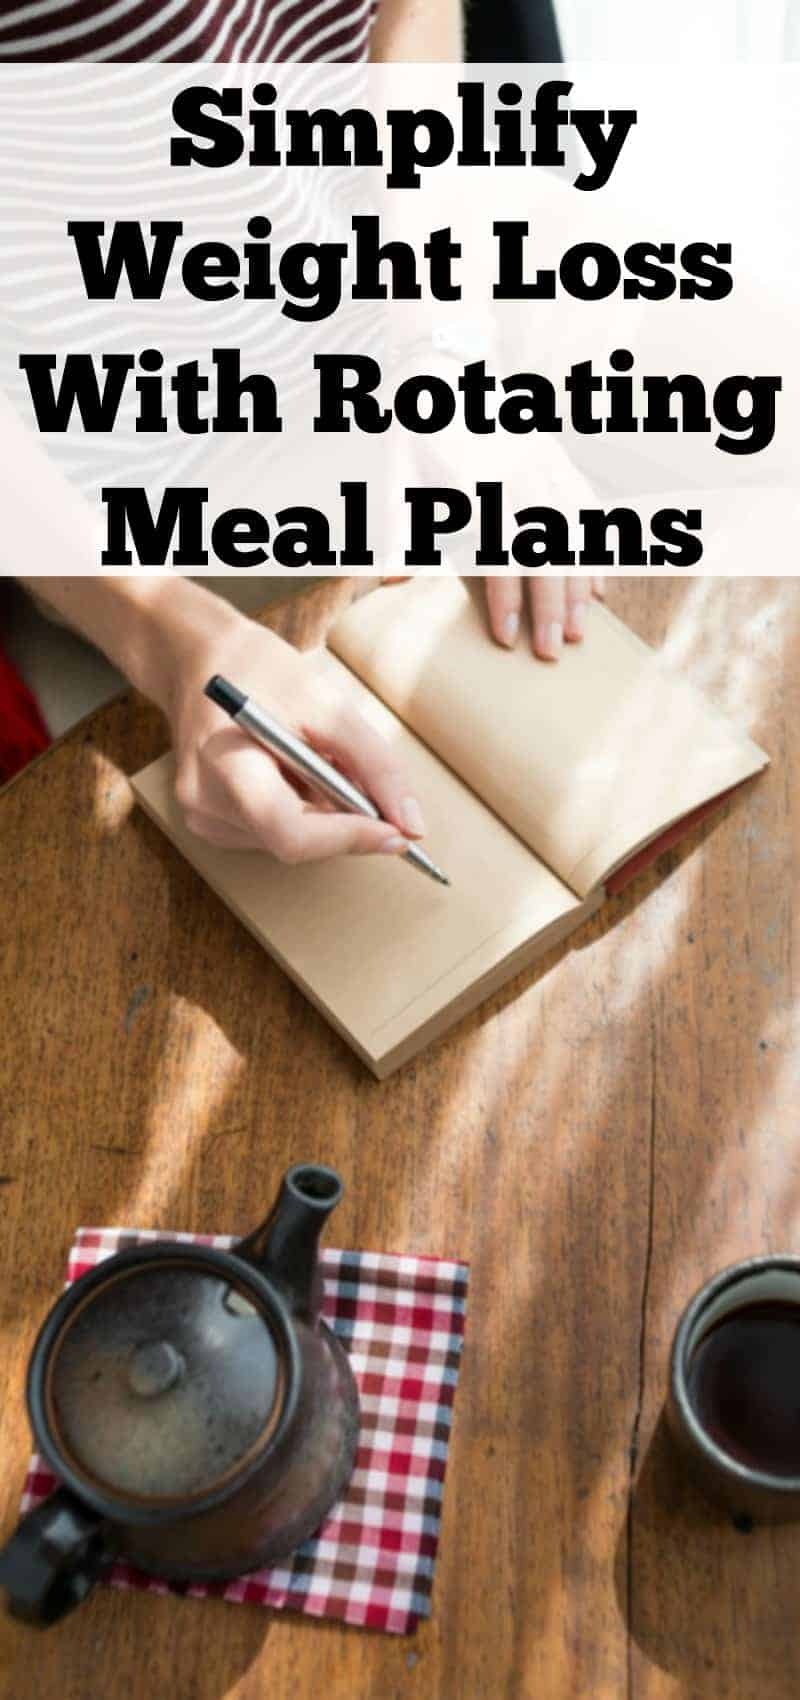 Simplify Weight Loss With Rotating Meal Plans